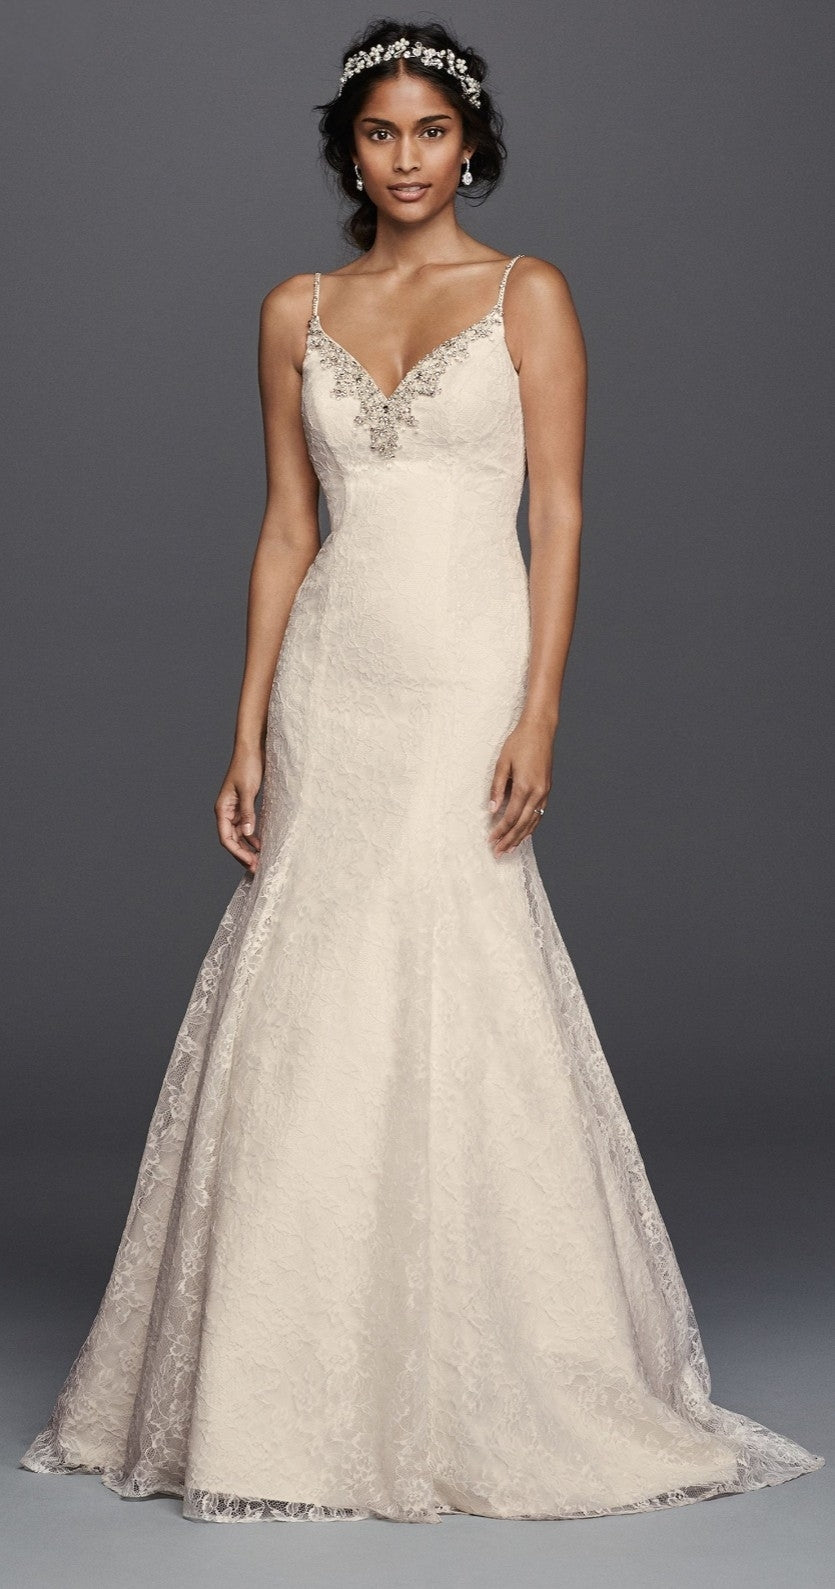 Jewel 'V3801' size 14 new wedding dress front view on model